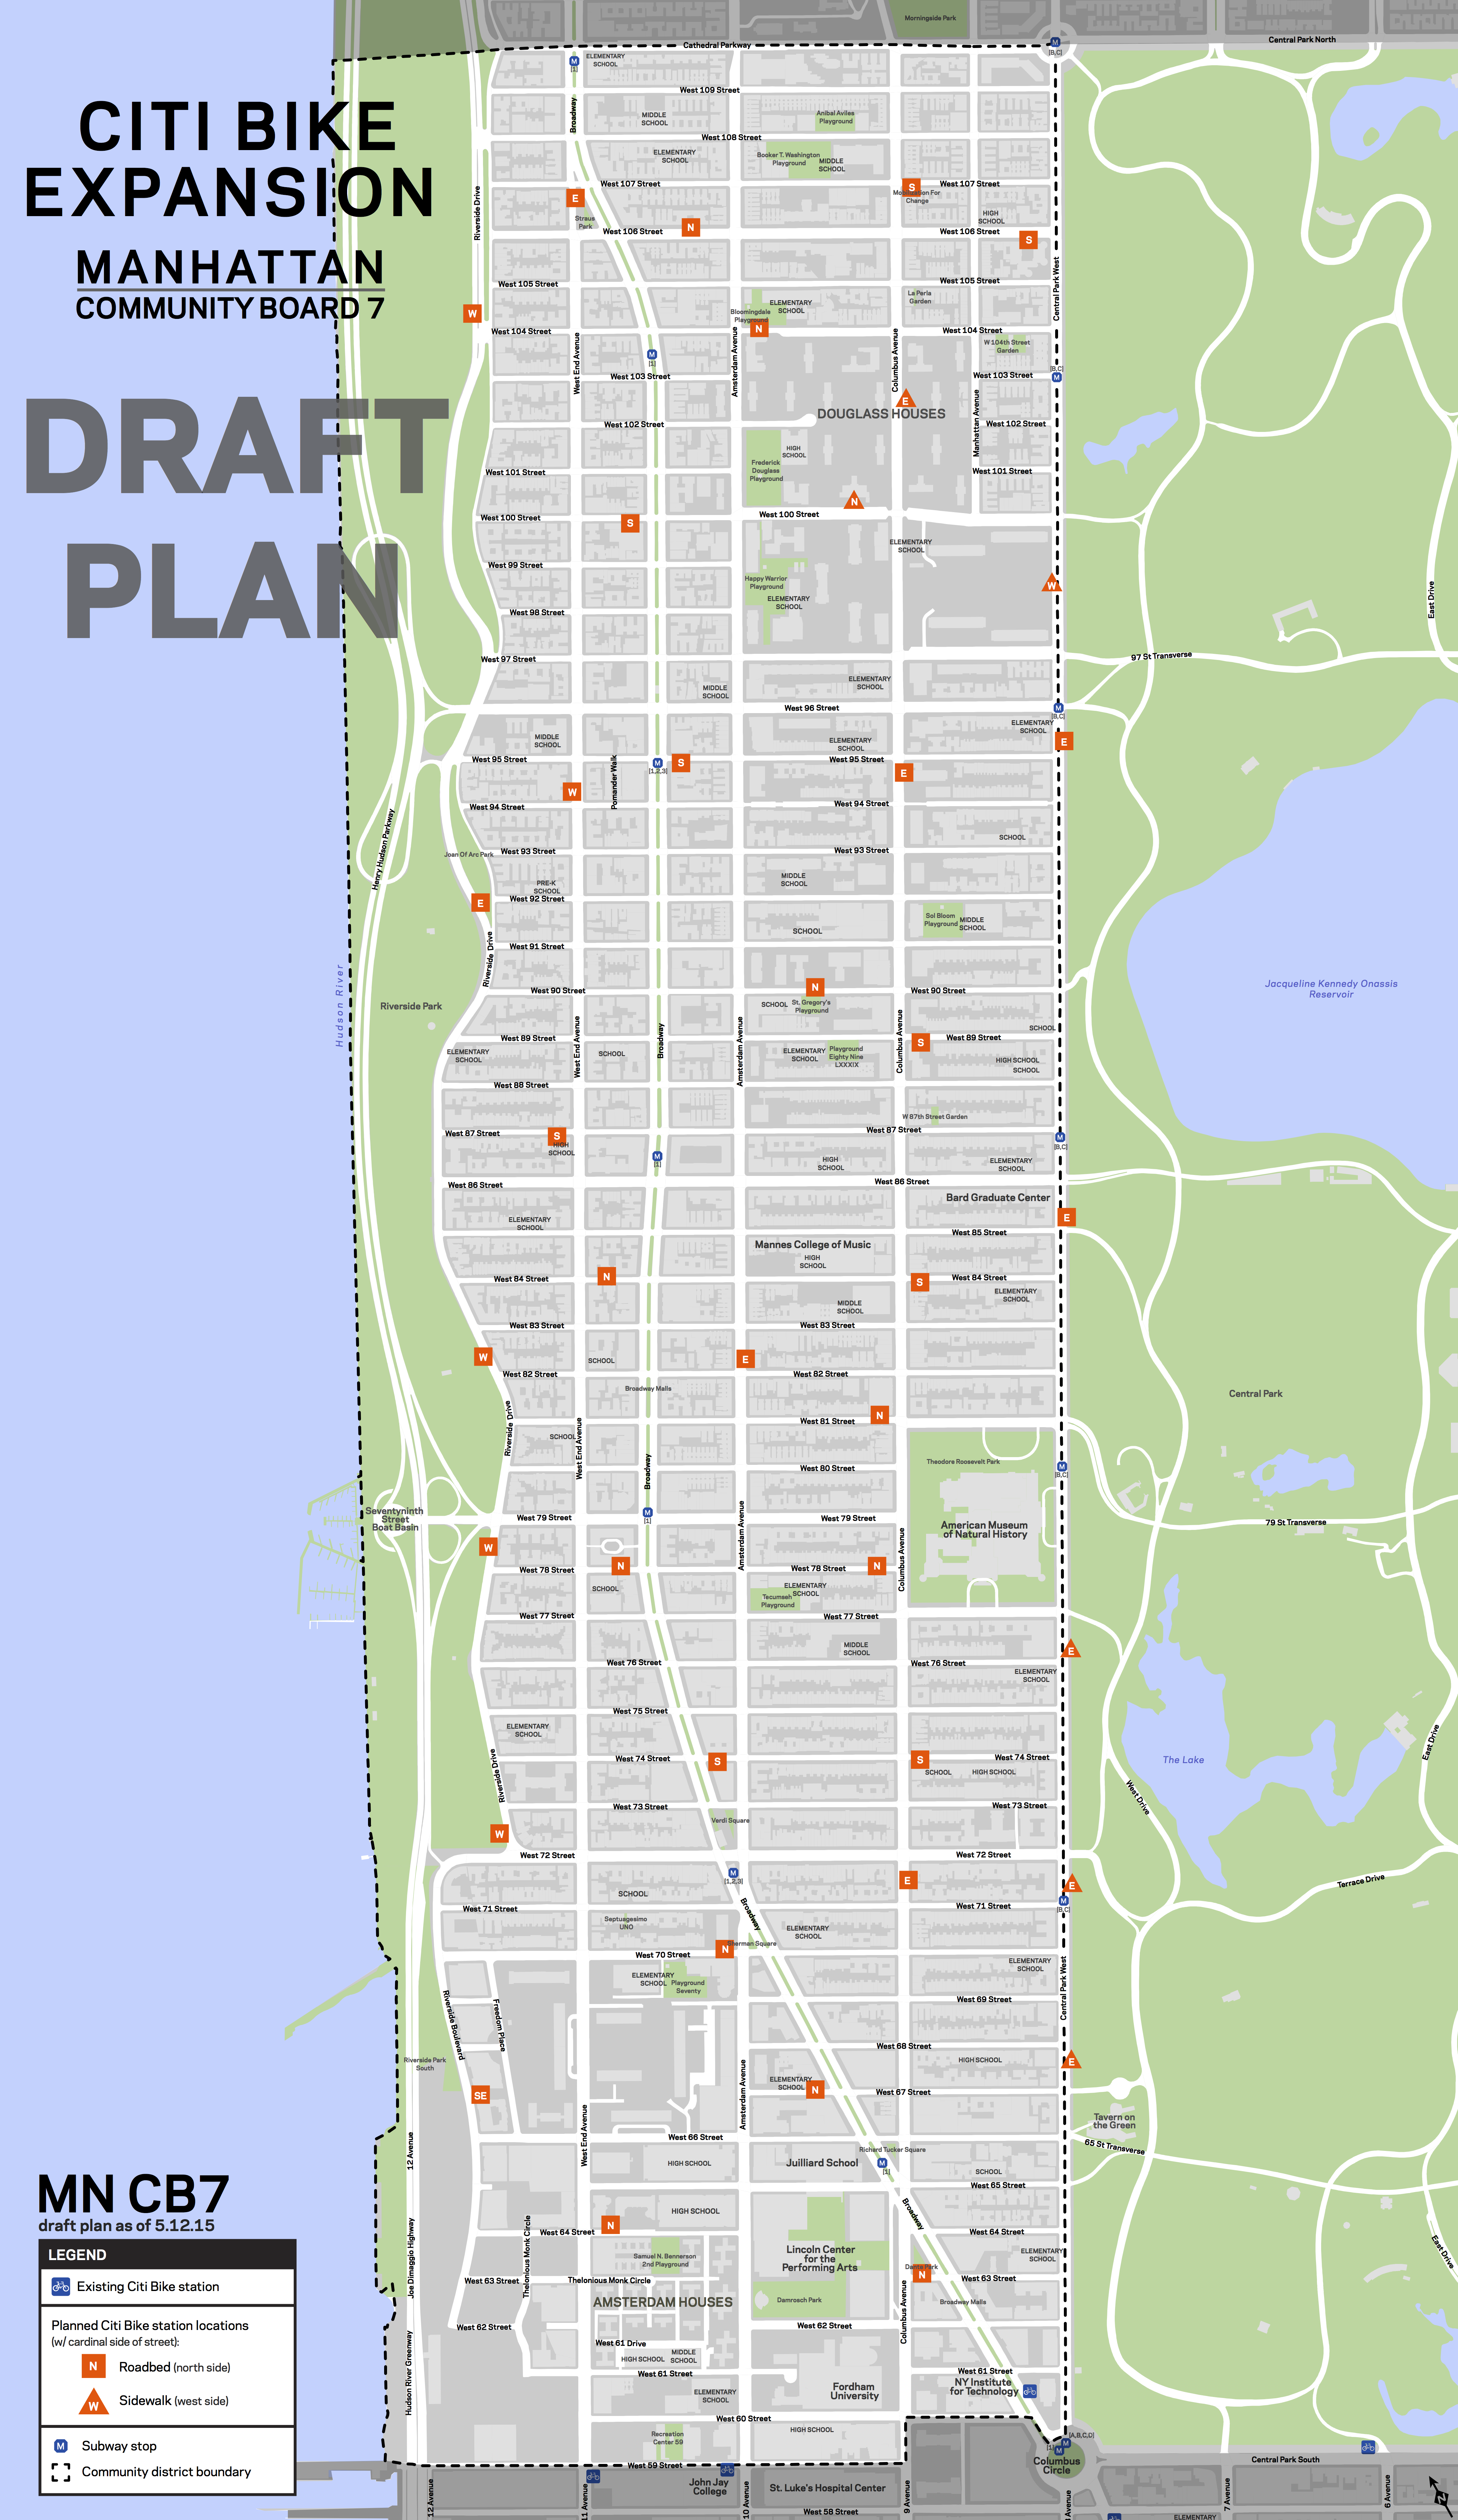 Upper West Side's 39 Citi Bike Station Locations Revealed ... on new york pedestrians, new york bike map, new york bike commuter, new york bike sharing,